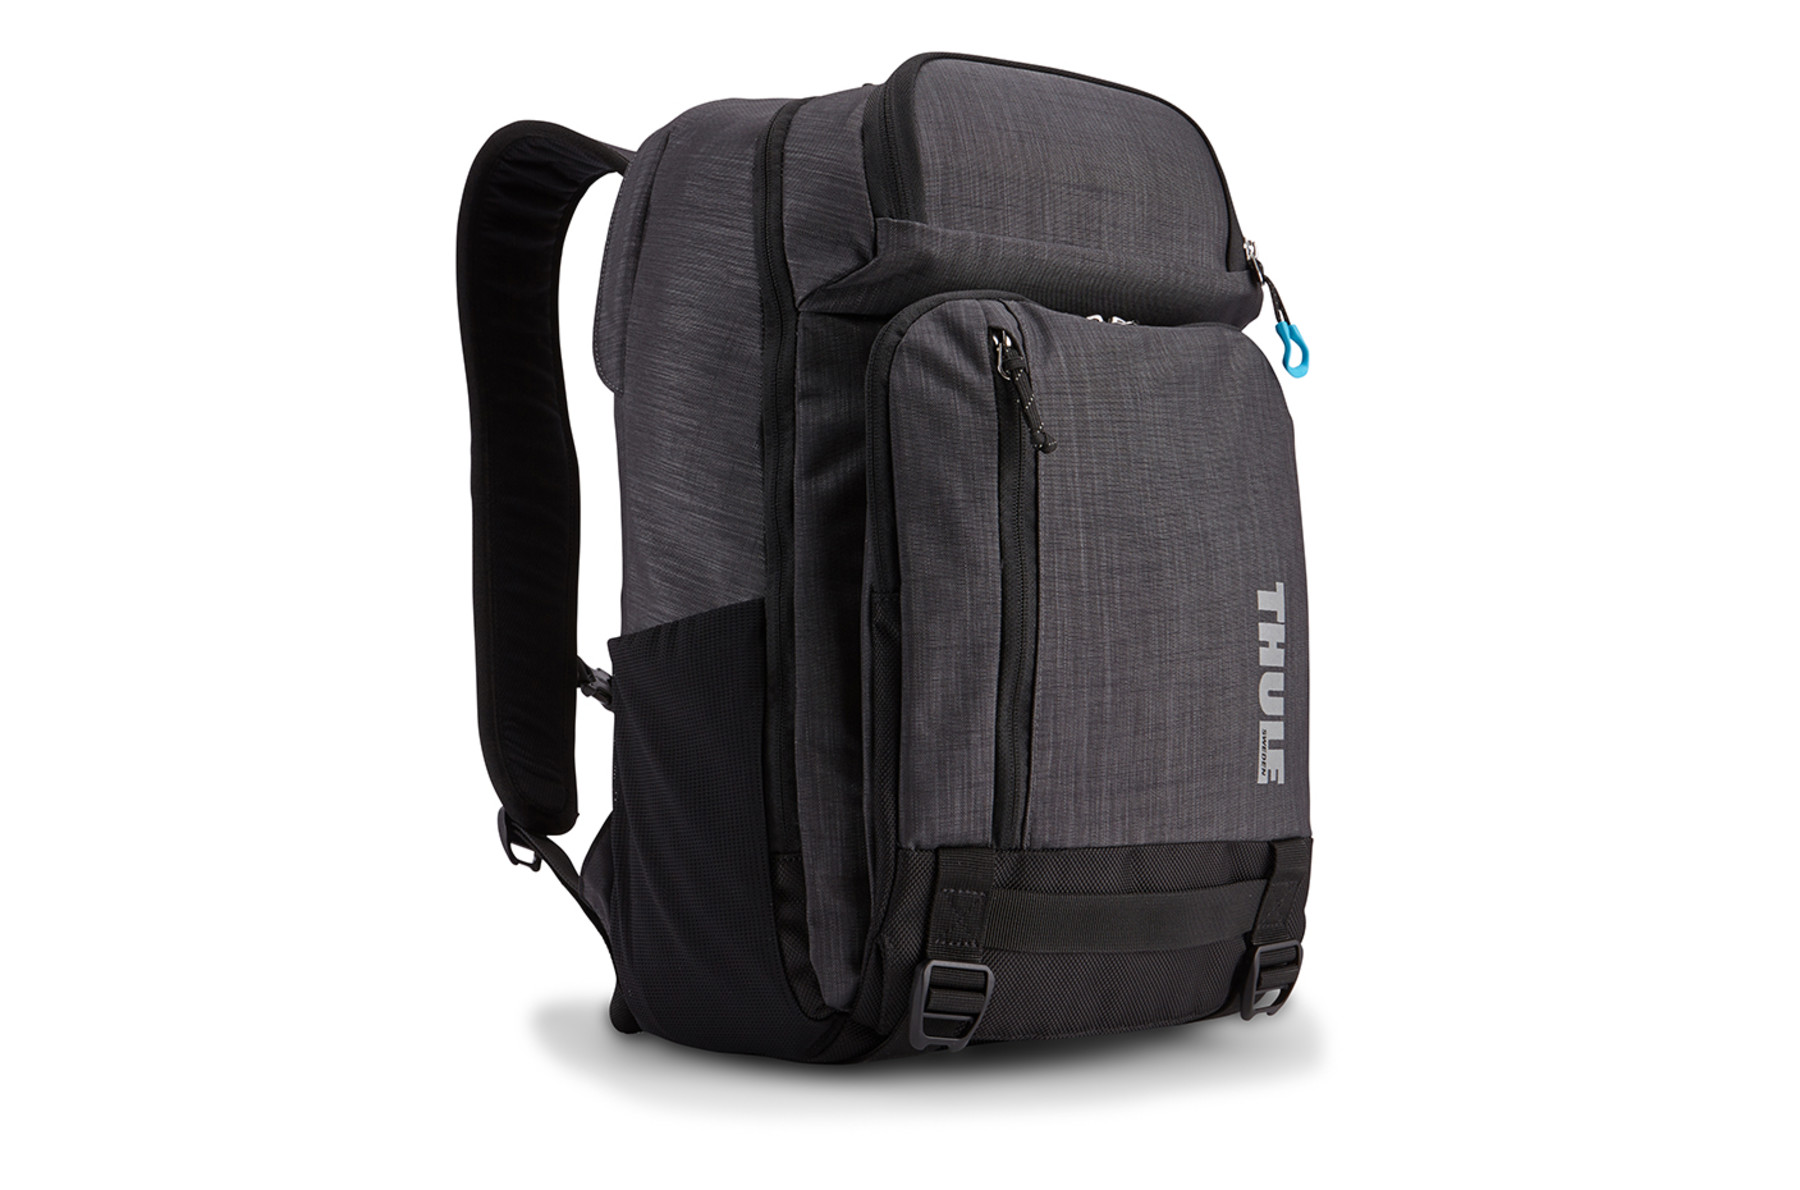 TSBP-115 Thule Strävan Backpack